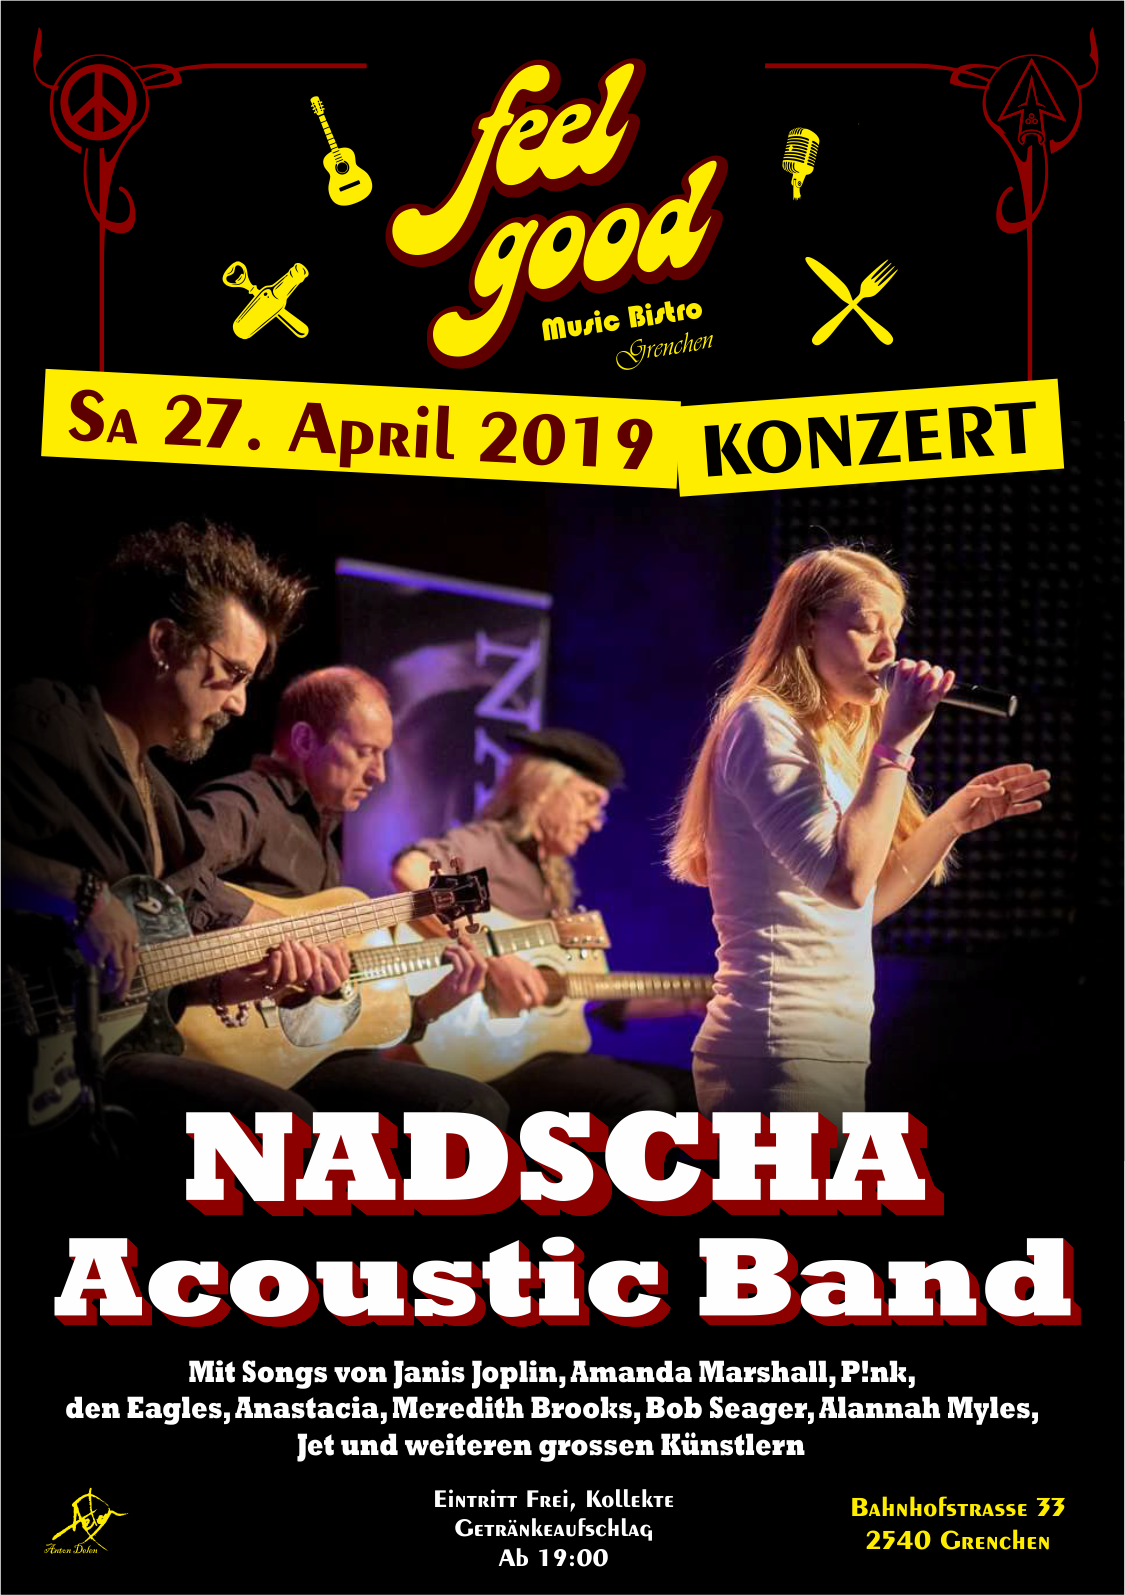 Nadscha Acoustic Band